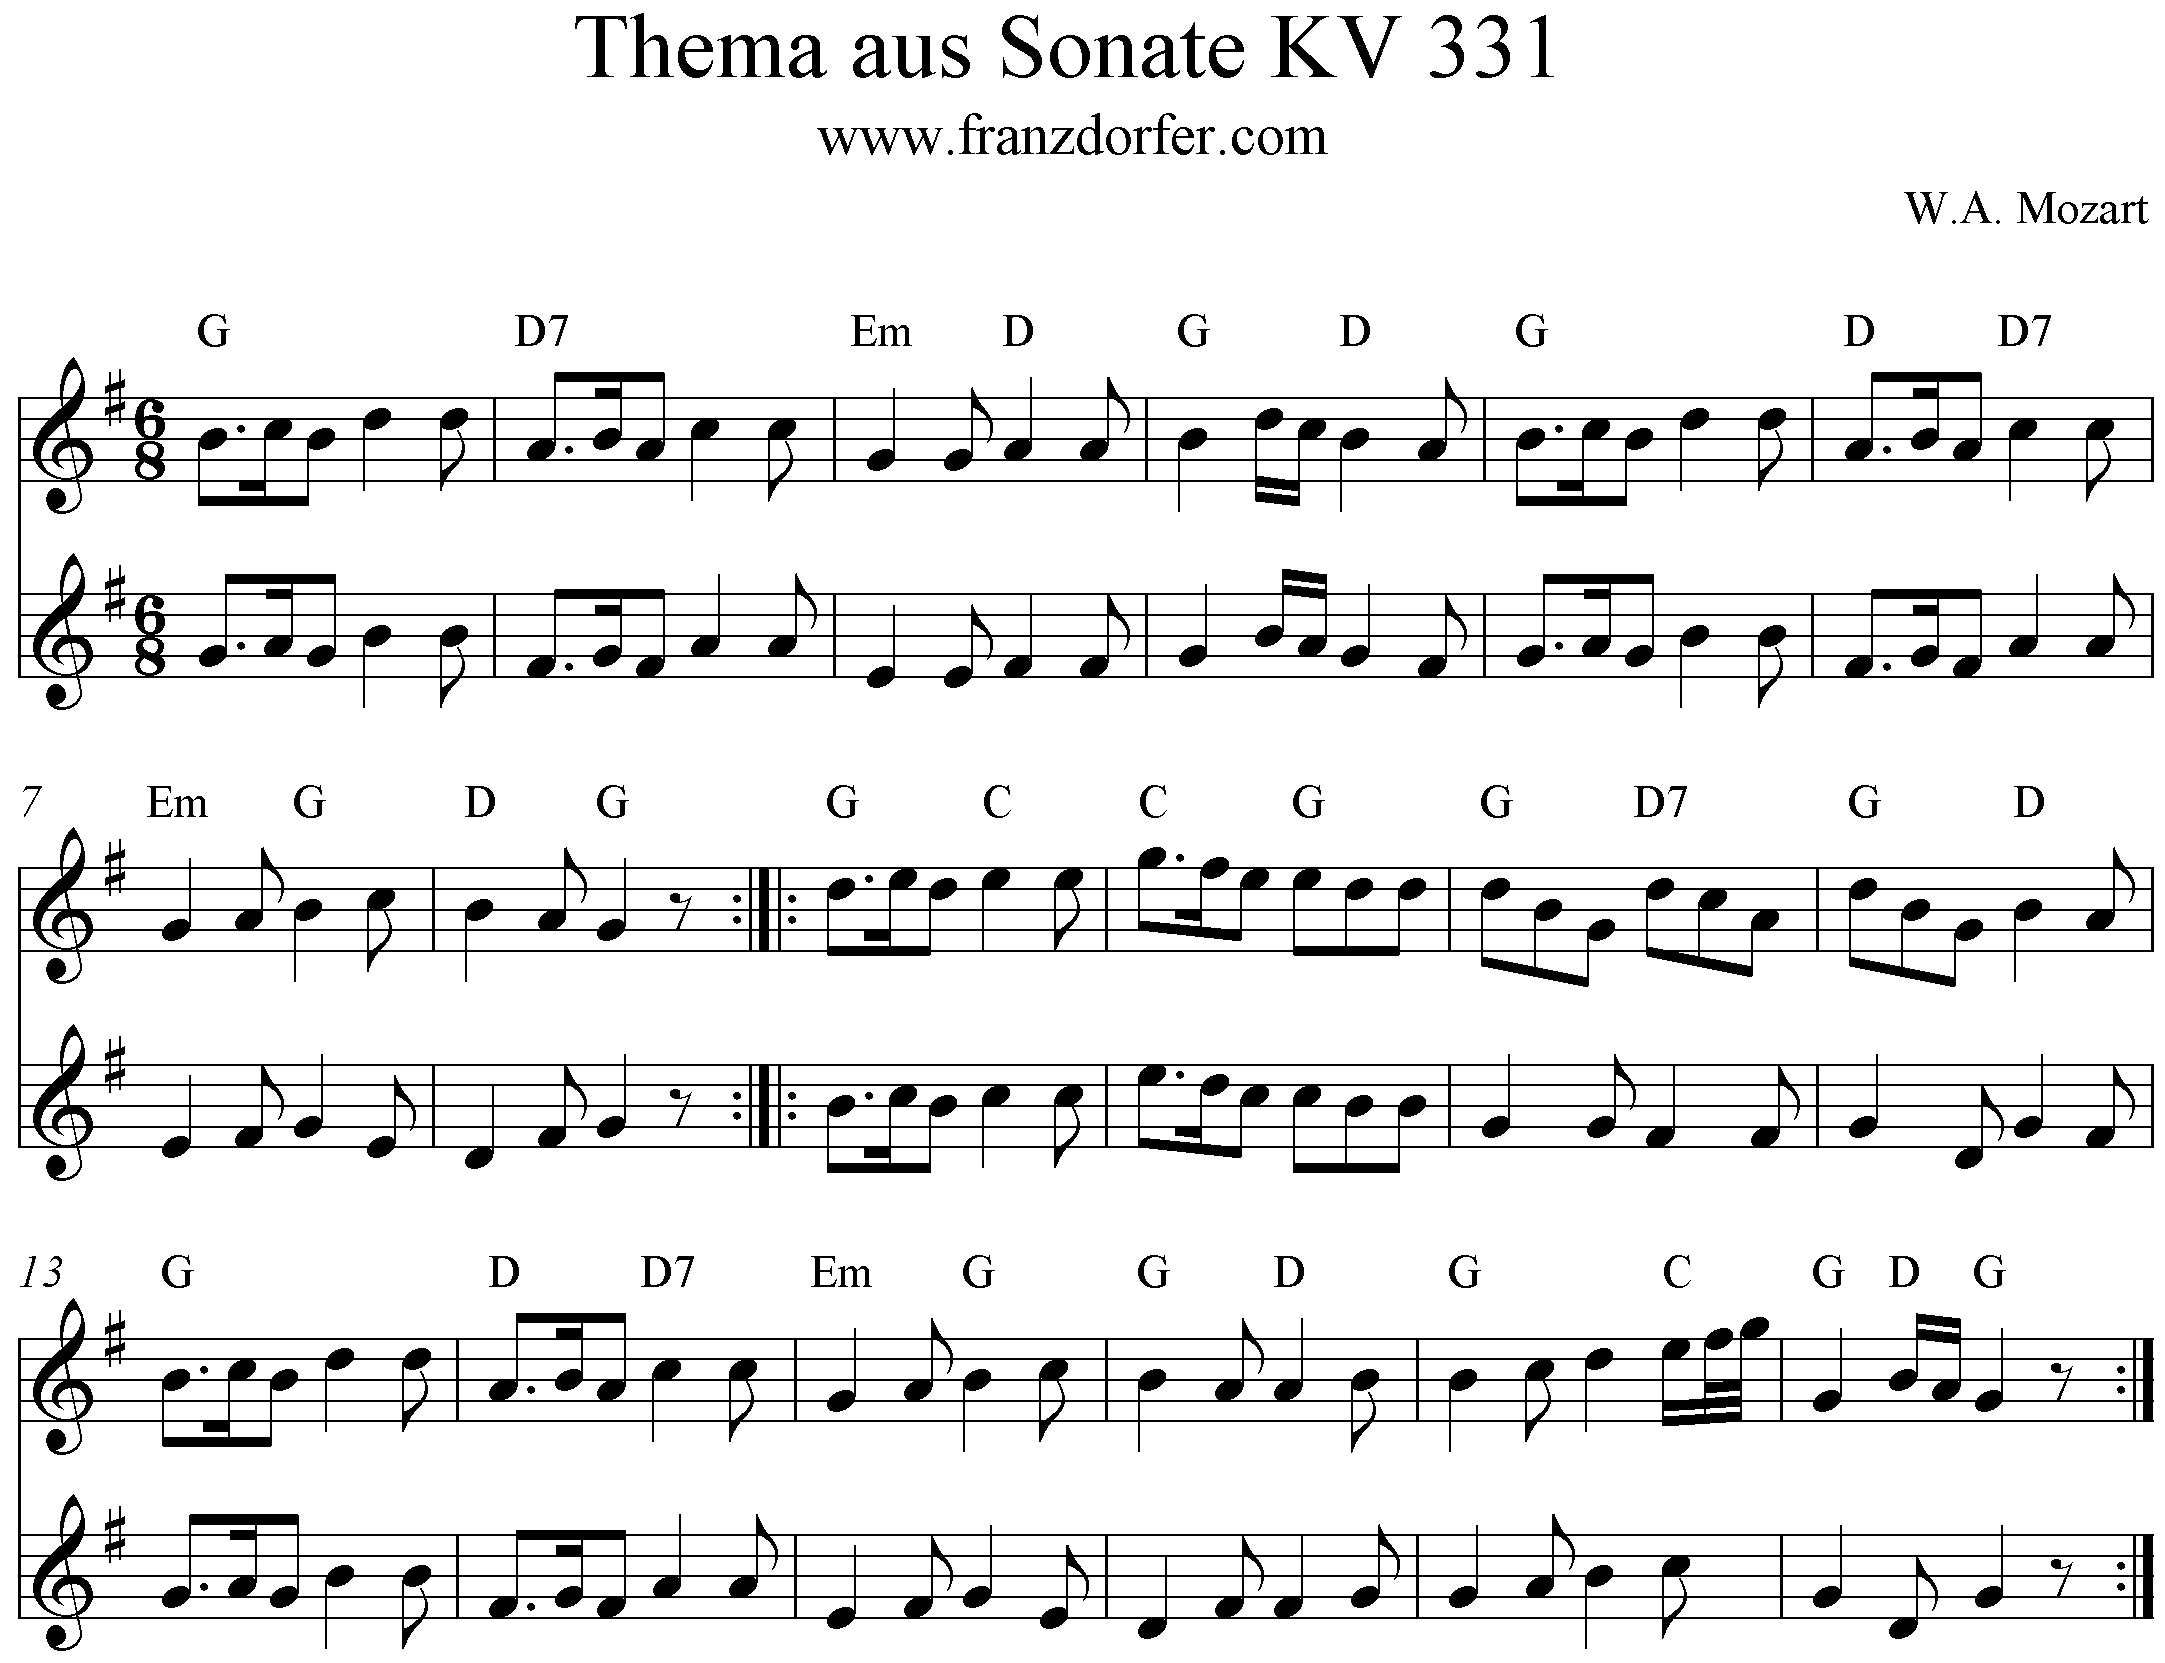 Noten Sonate KV331 Thema